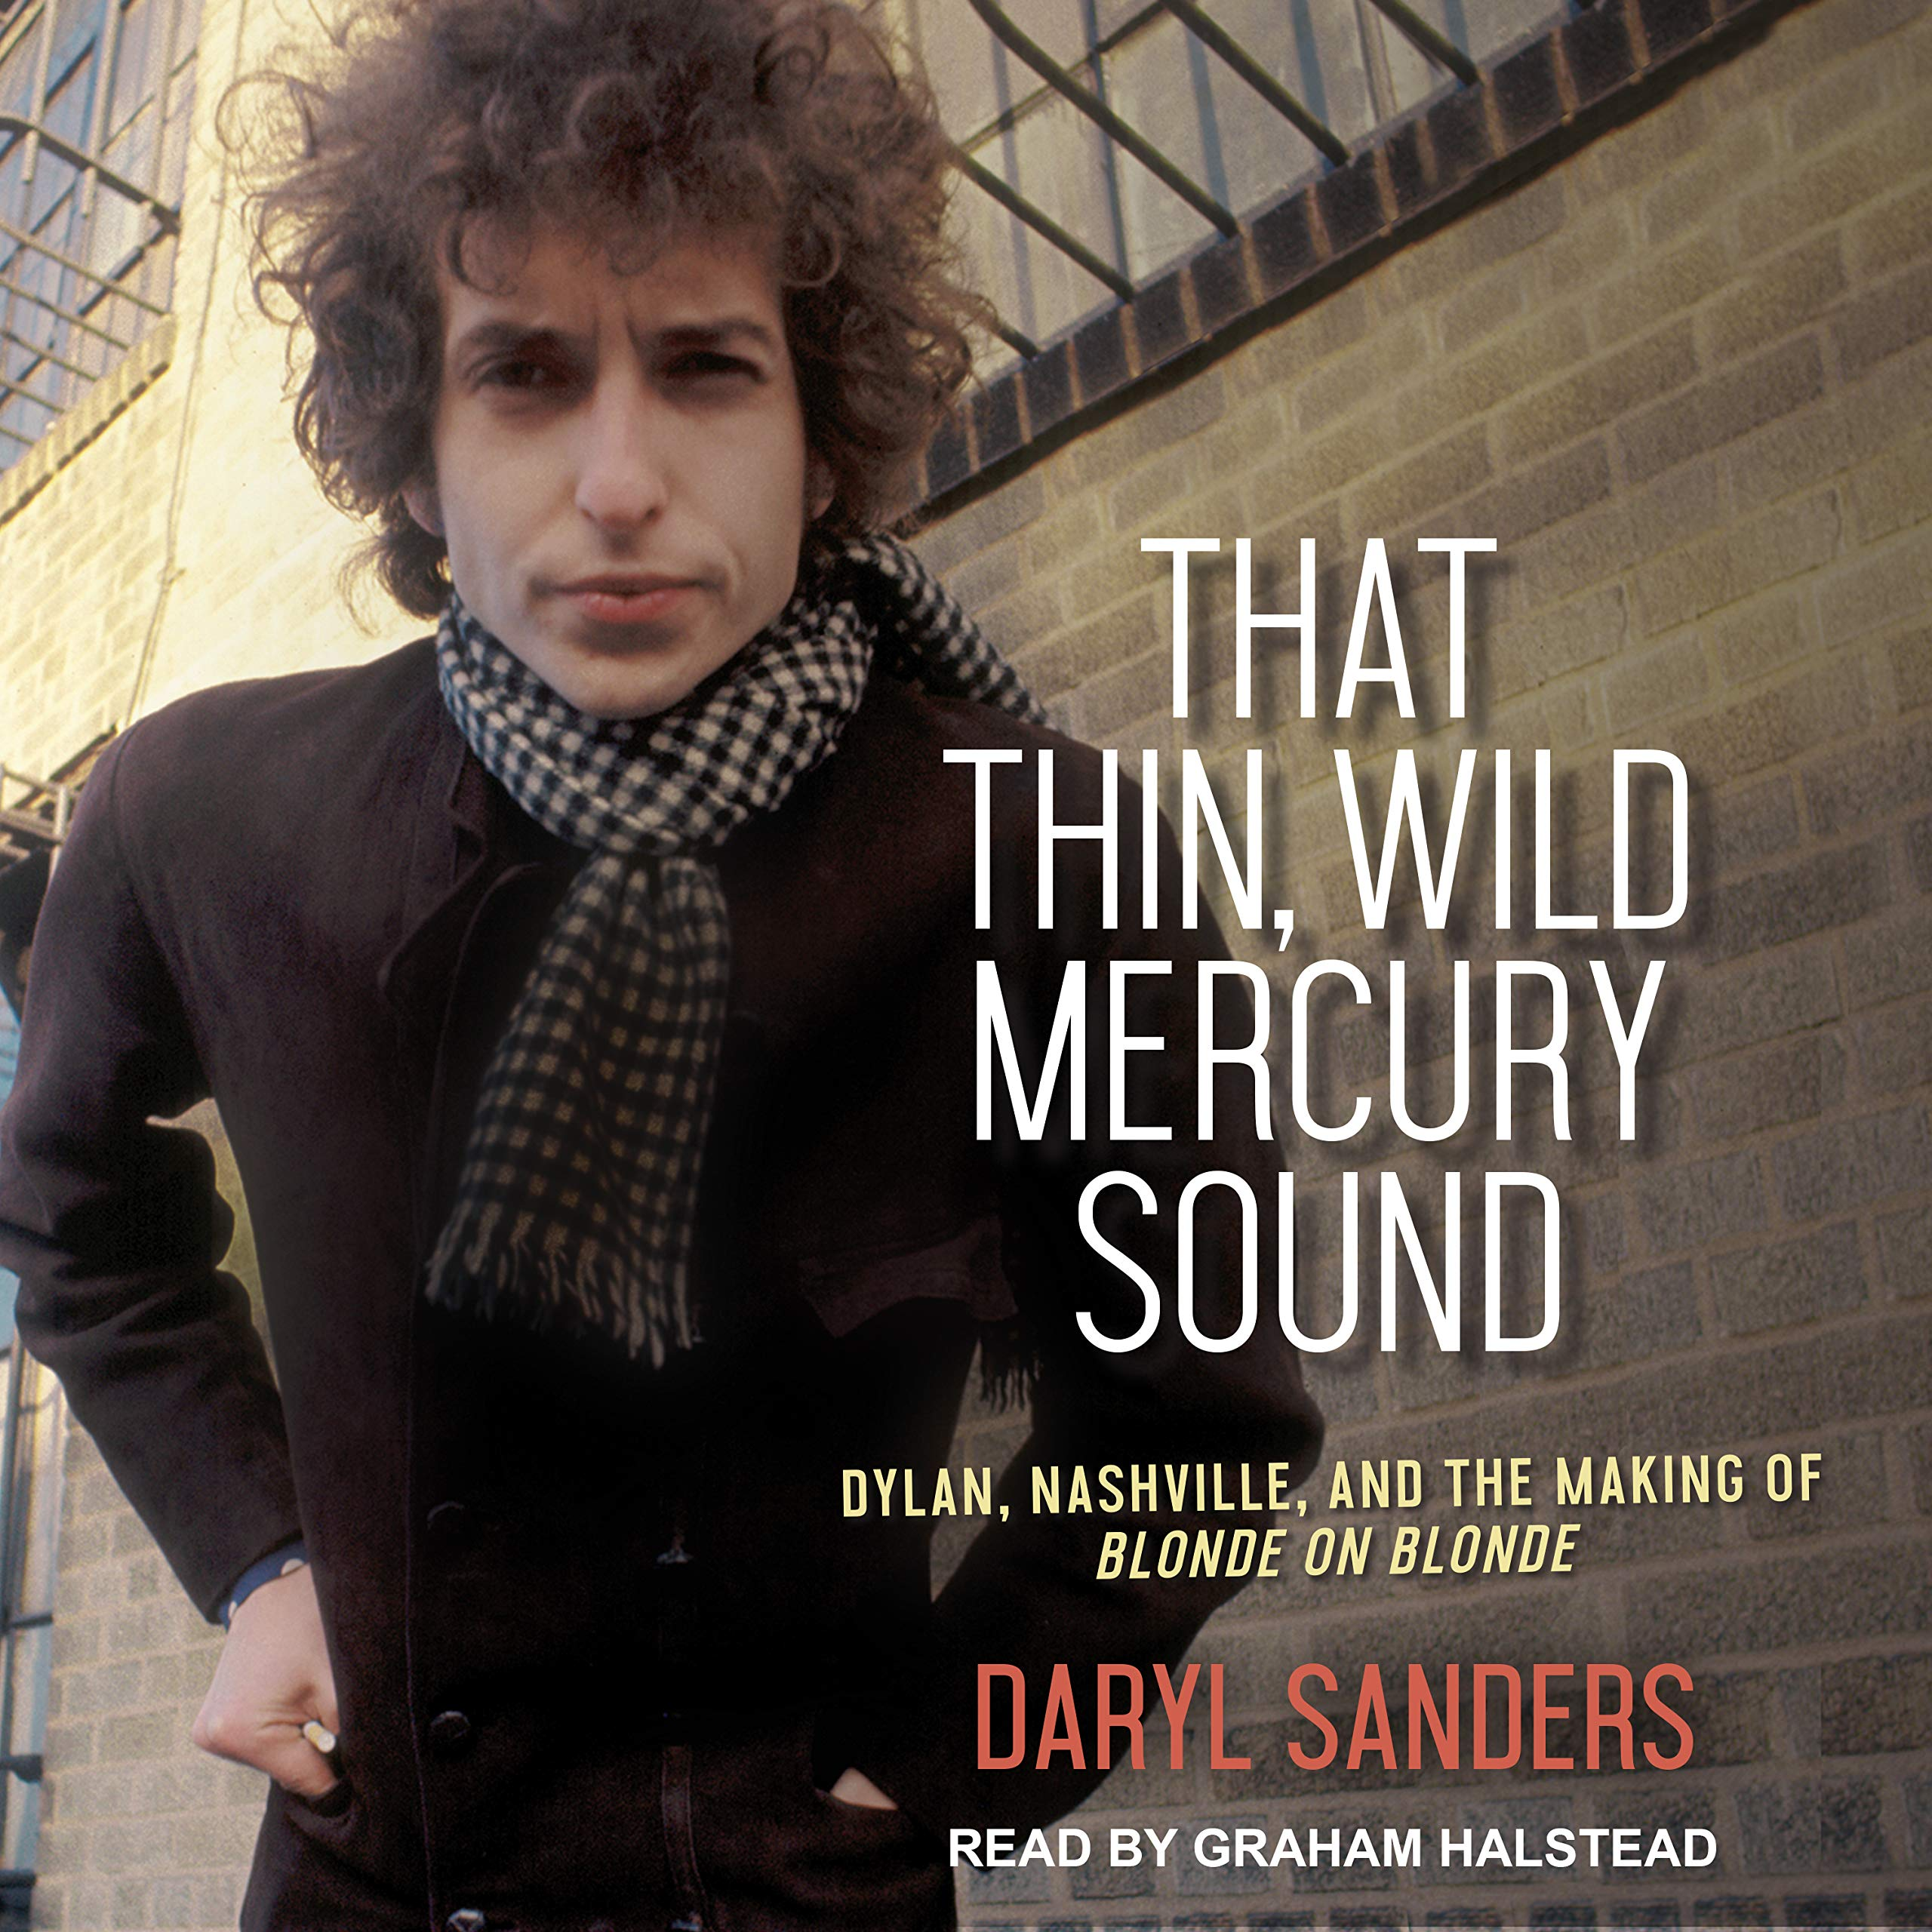 Image result for Thin Wild Mercury Sound images